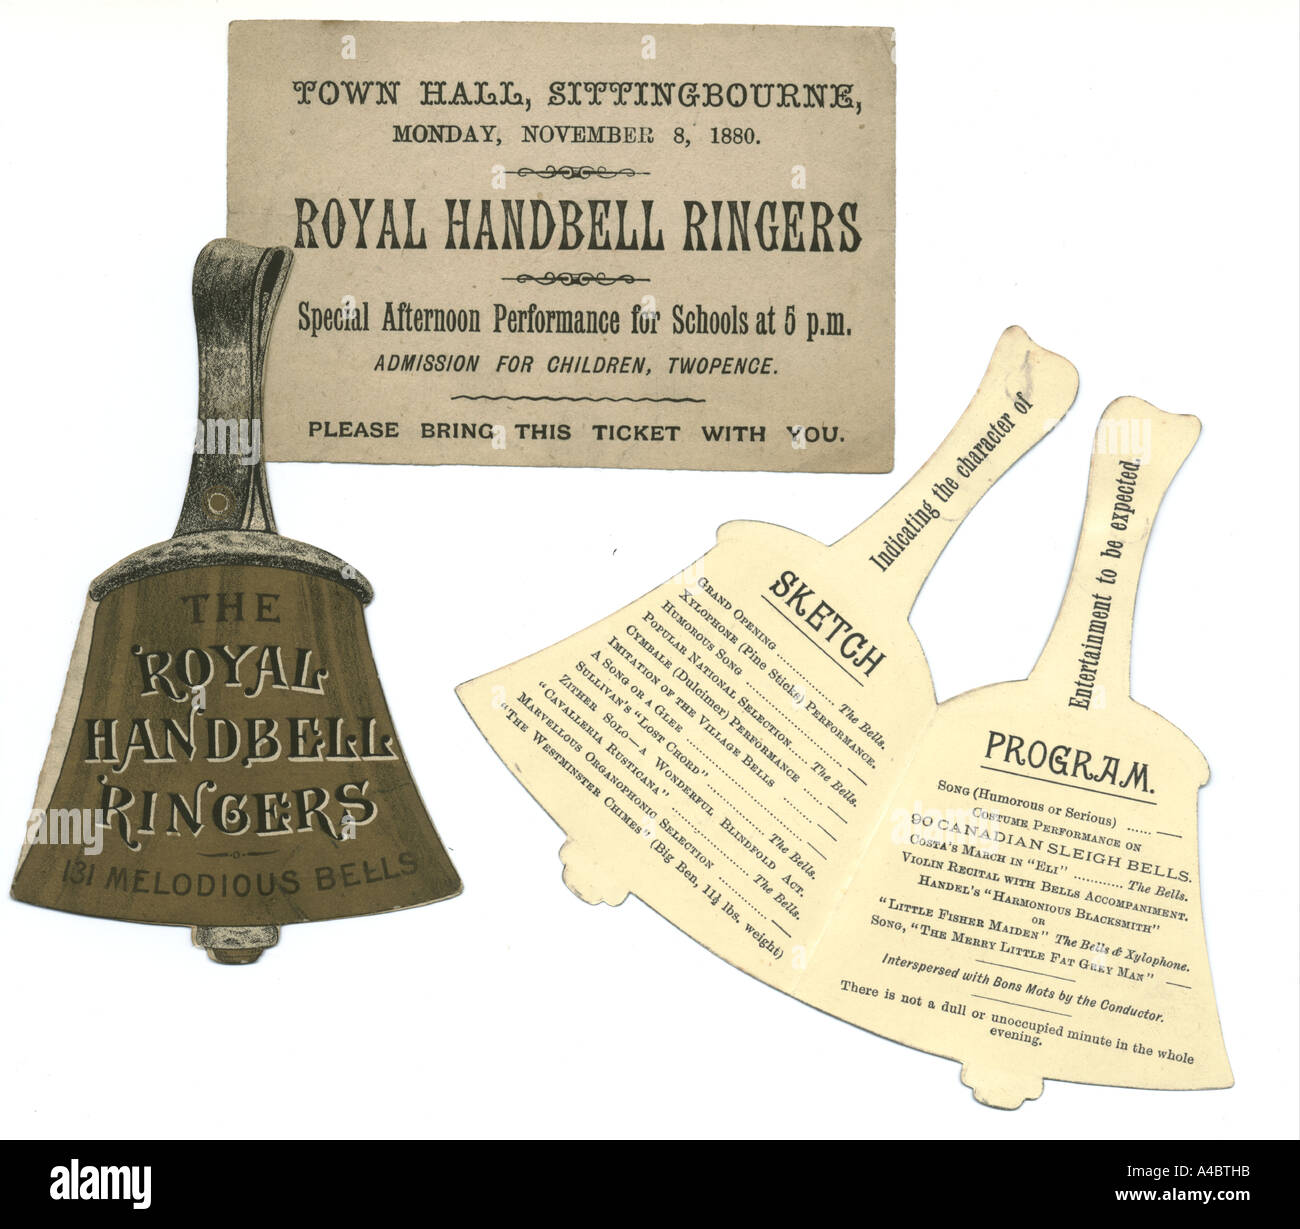 Royal Hand bell Ringers advertisements and concert admission ticket 1890. - Stock Image